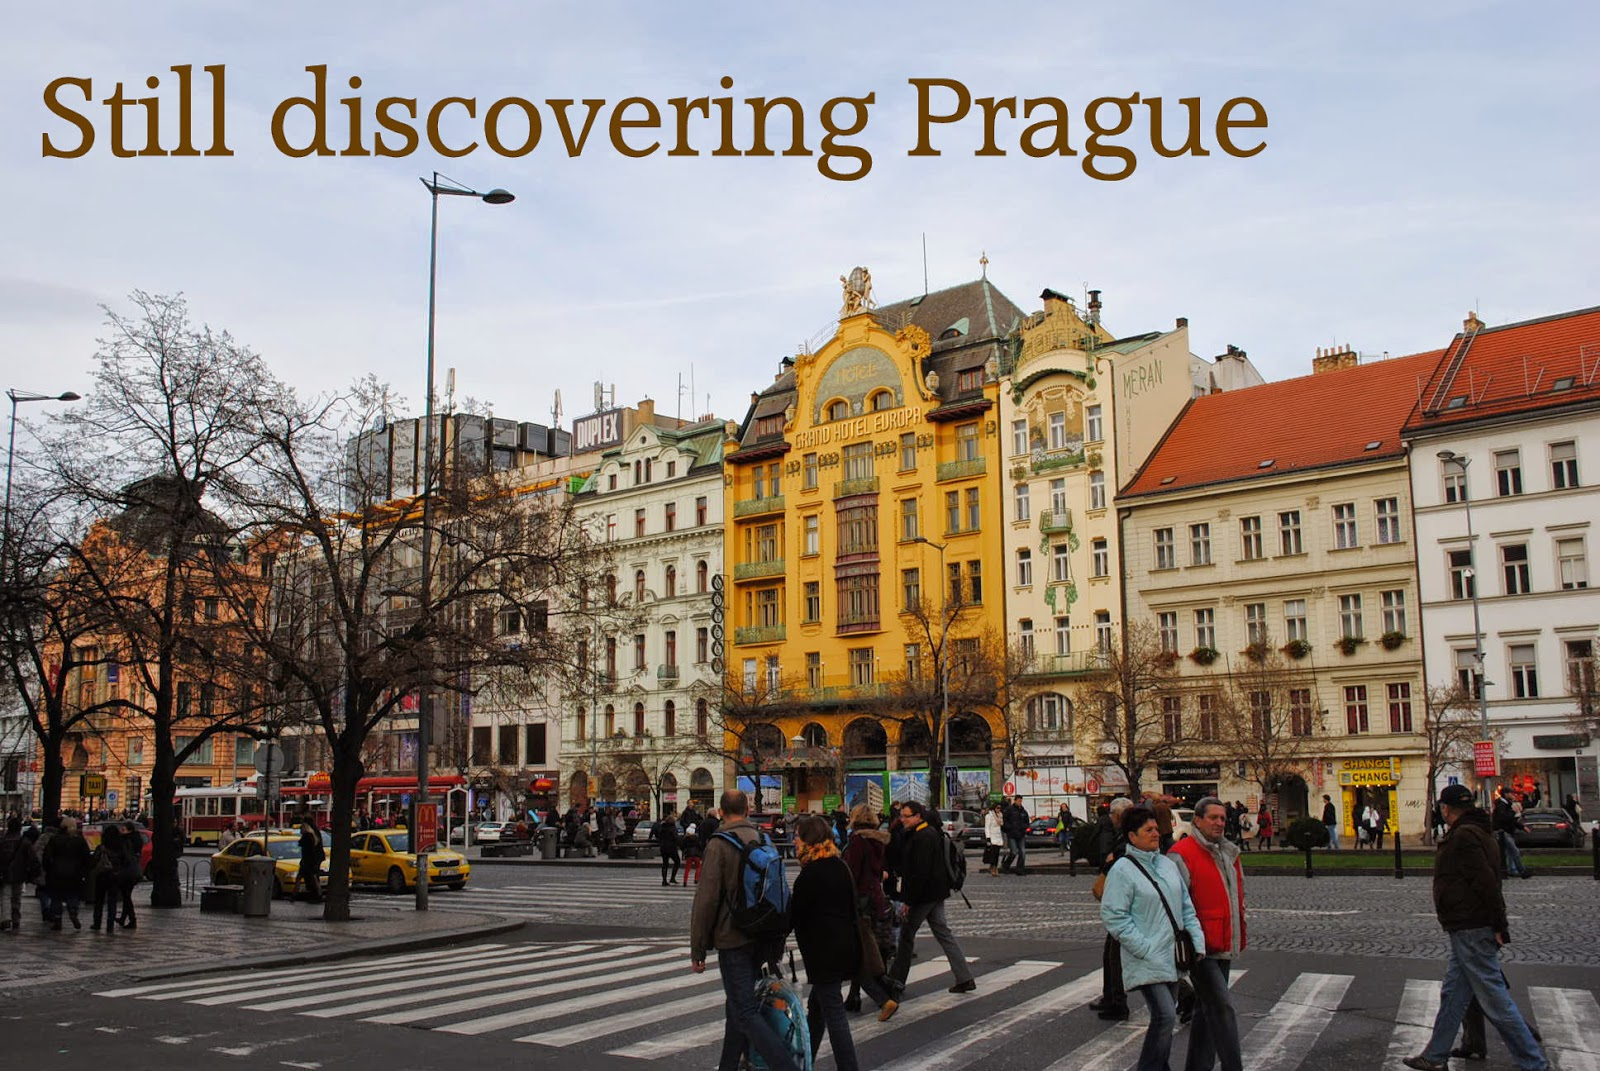 discovering prague Prague has never been a sandwich city on par with philadelphia (cheesesteaks),  new york (pastrami on rye), or new orleans (muffuletta).